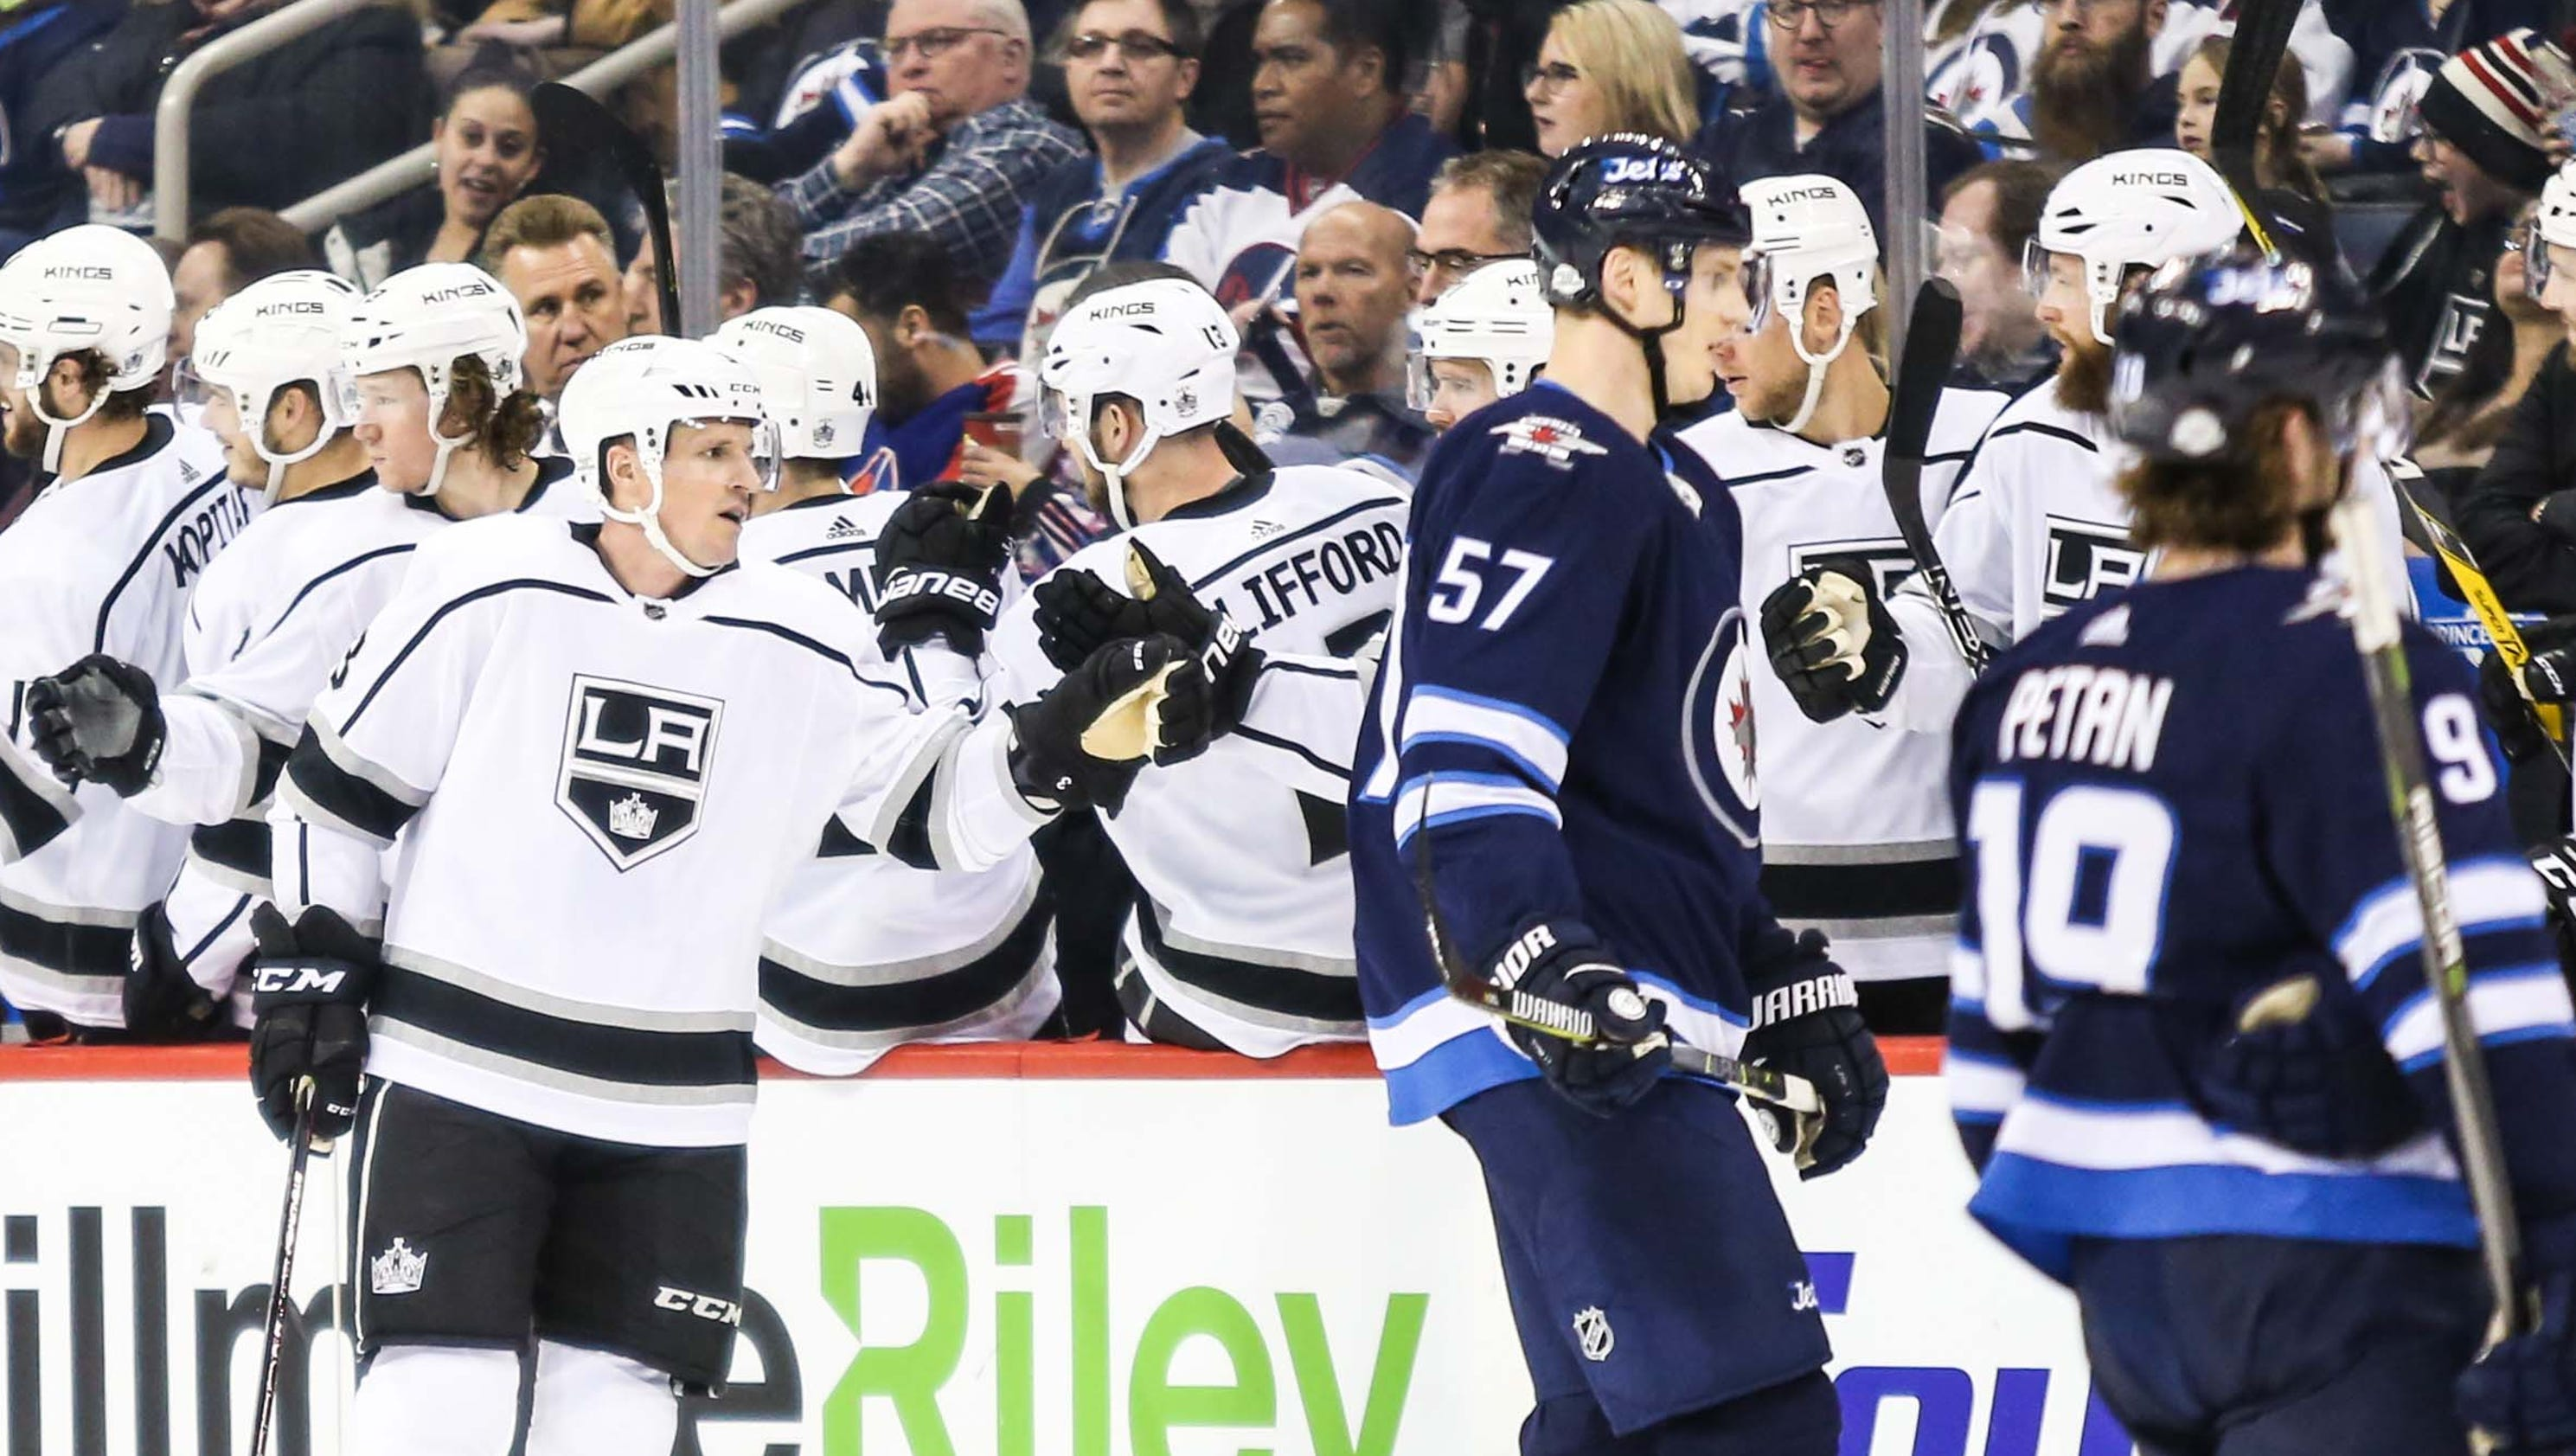 636547666260533224-usp-nhl--los-angeles-kings-at-winnipeg-jets